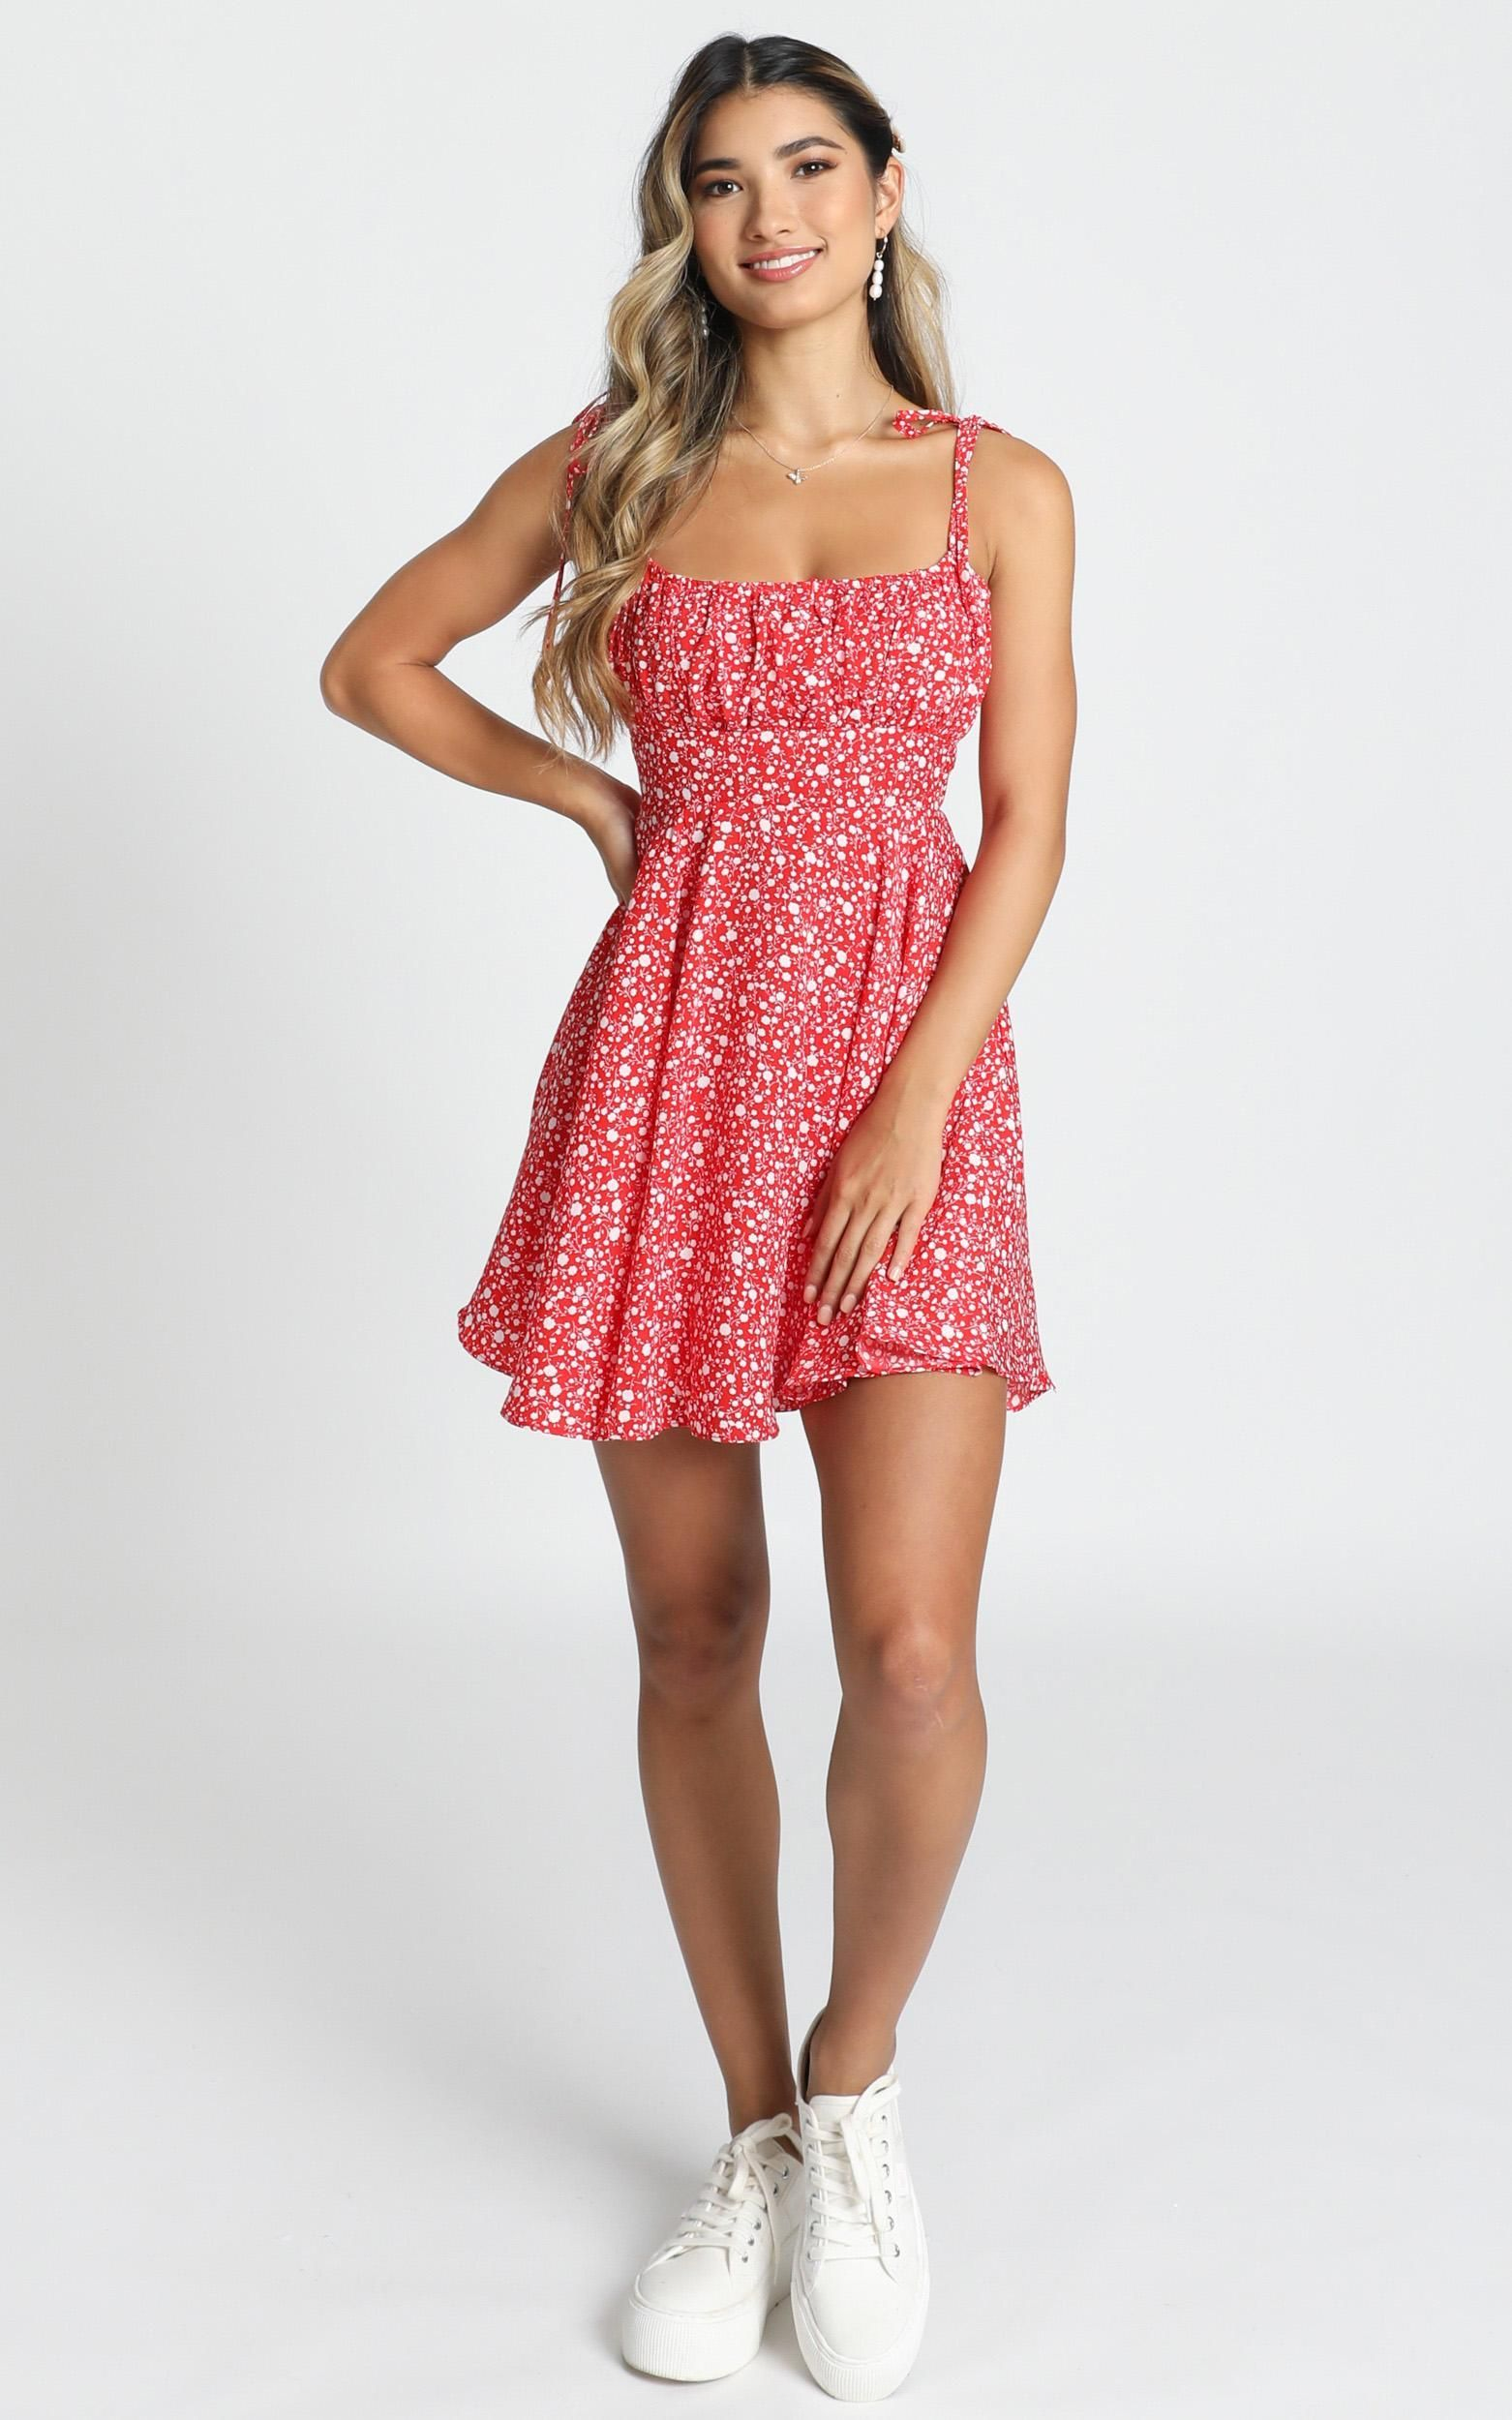 Summer Jam Dress In Red Floral Print Showpo Dresses Summer Teens Red Summer Dresses Trendy Summer Outfits [ 2500 x 1562 Pixel ]